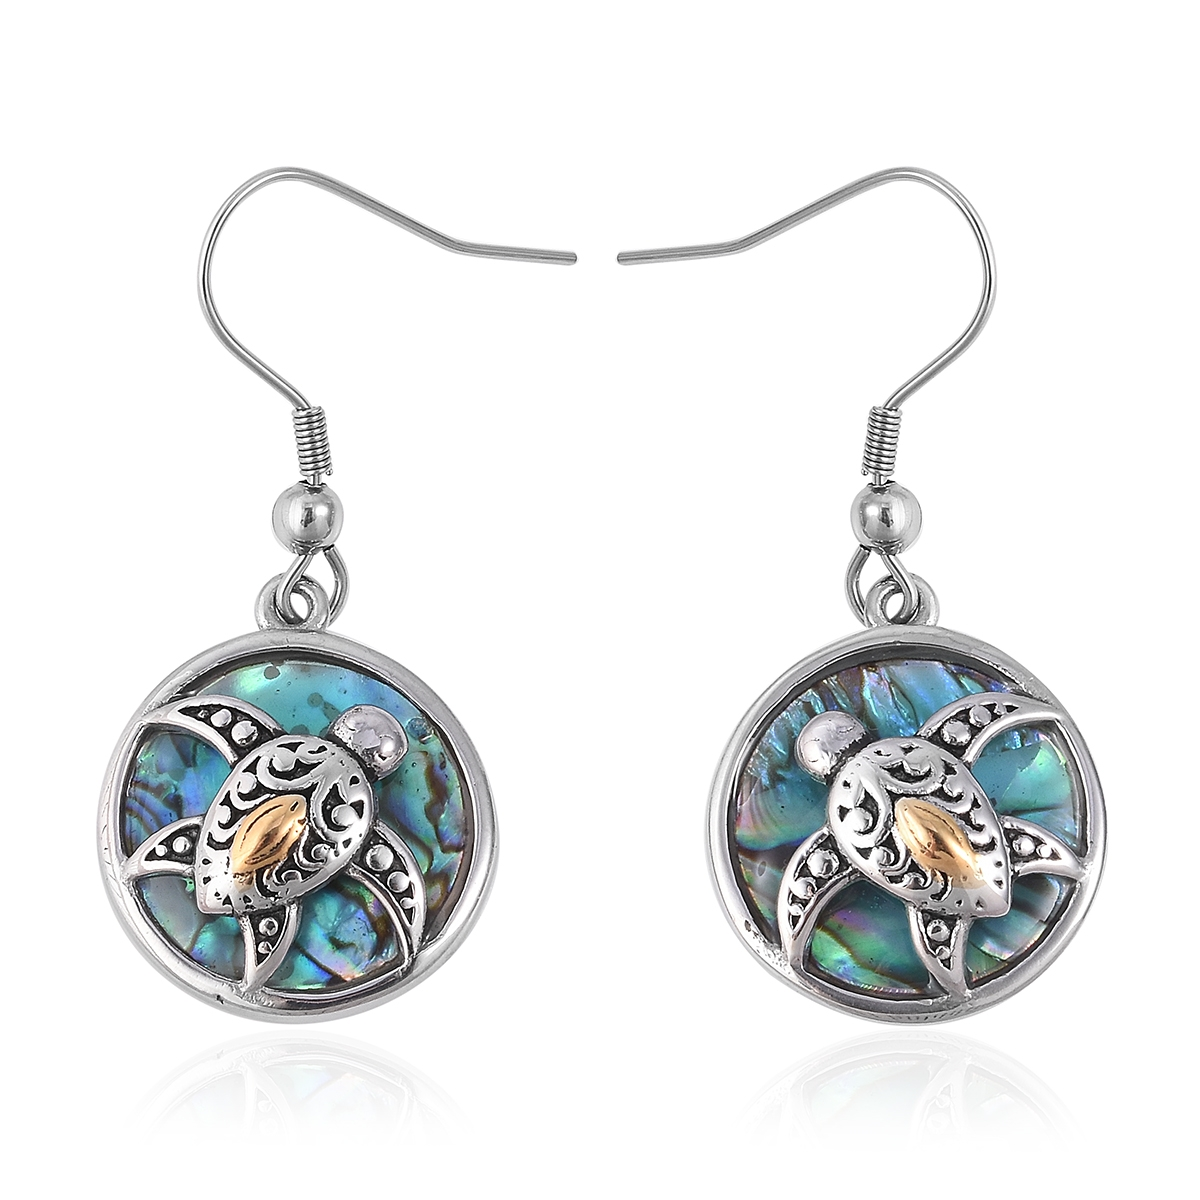 Abalone Shell Black Oxidized ION Plated YG and Stainless Steel Turtle Earrings